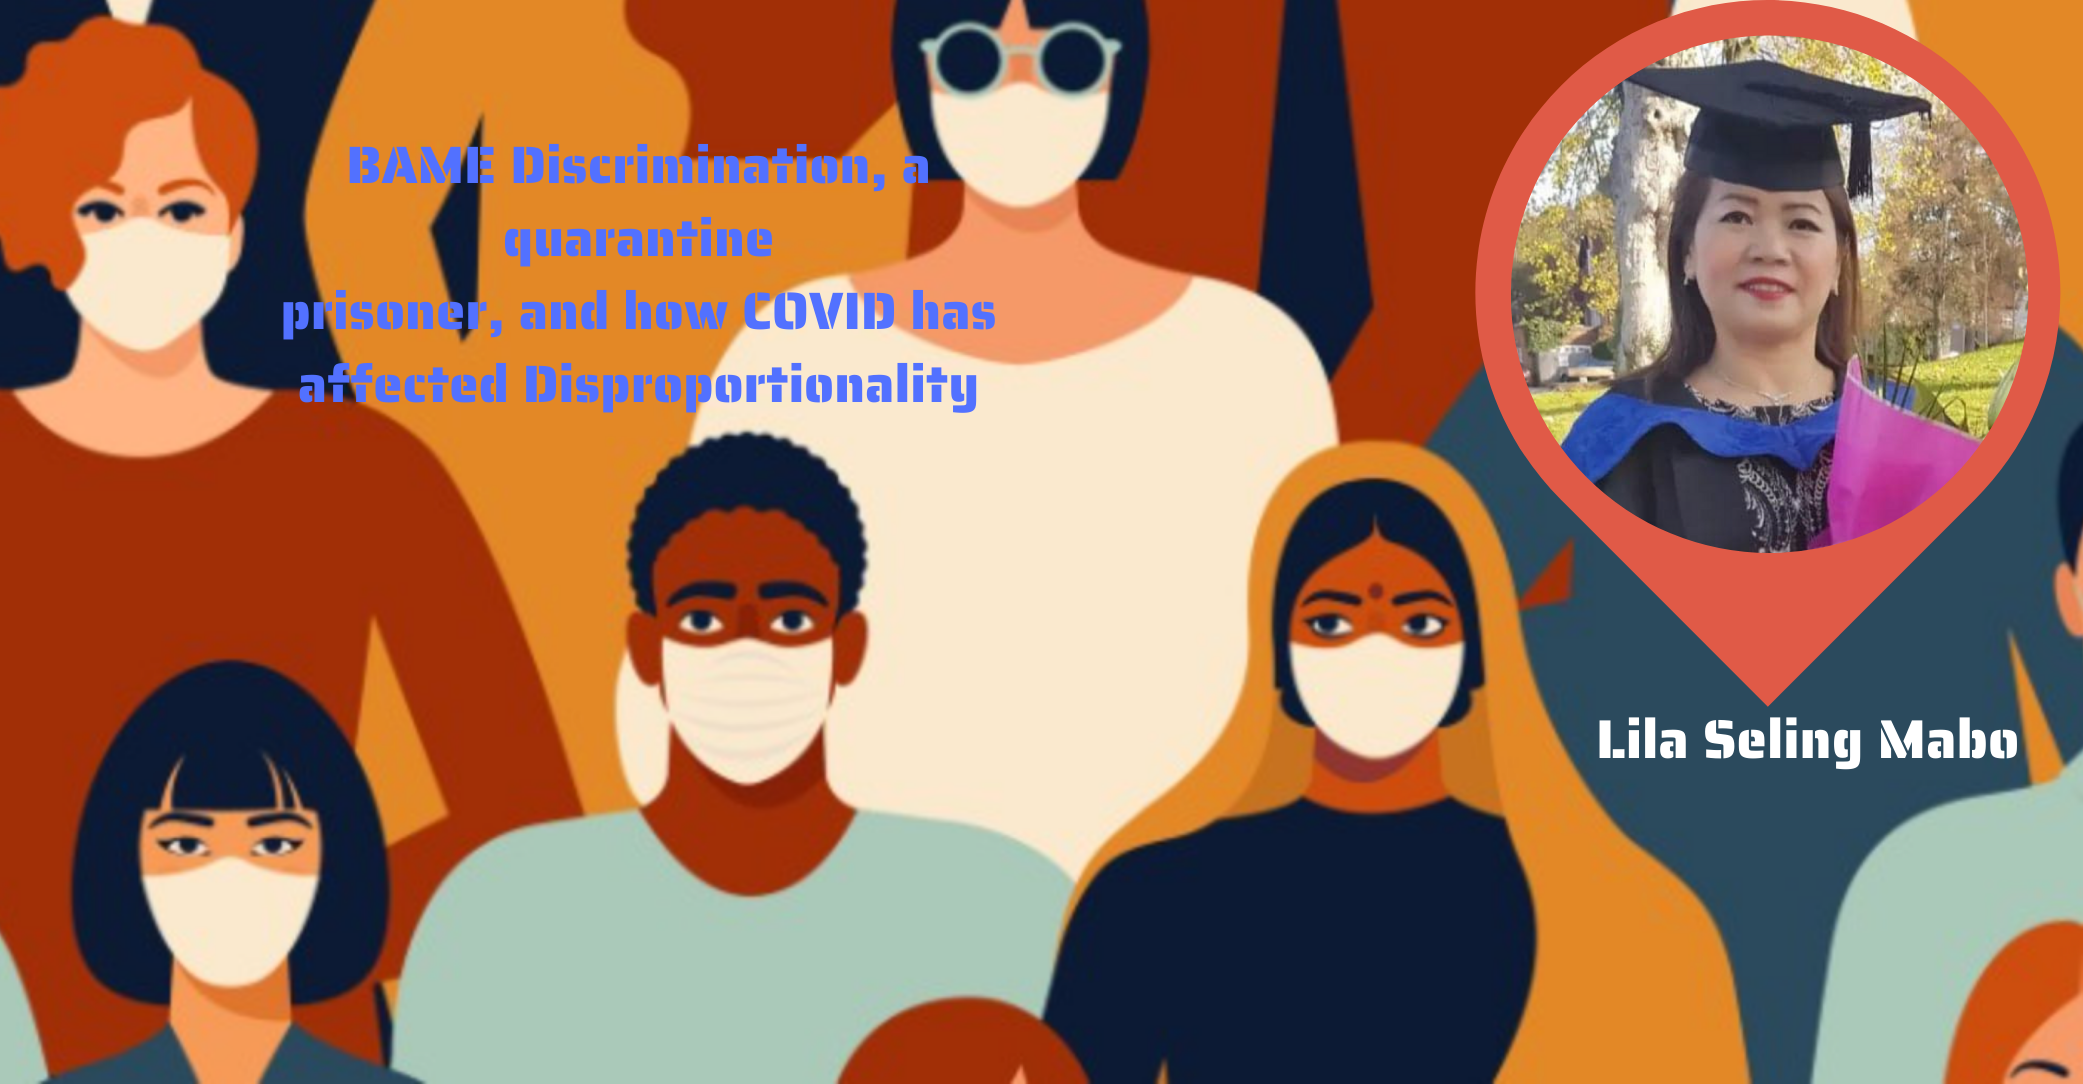 BAME DISCRIMINATION, A QUARANTINE PRISONER, AND HOW COVID HAS AFFECTED DISPROPORTIONALITY